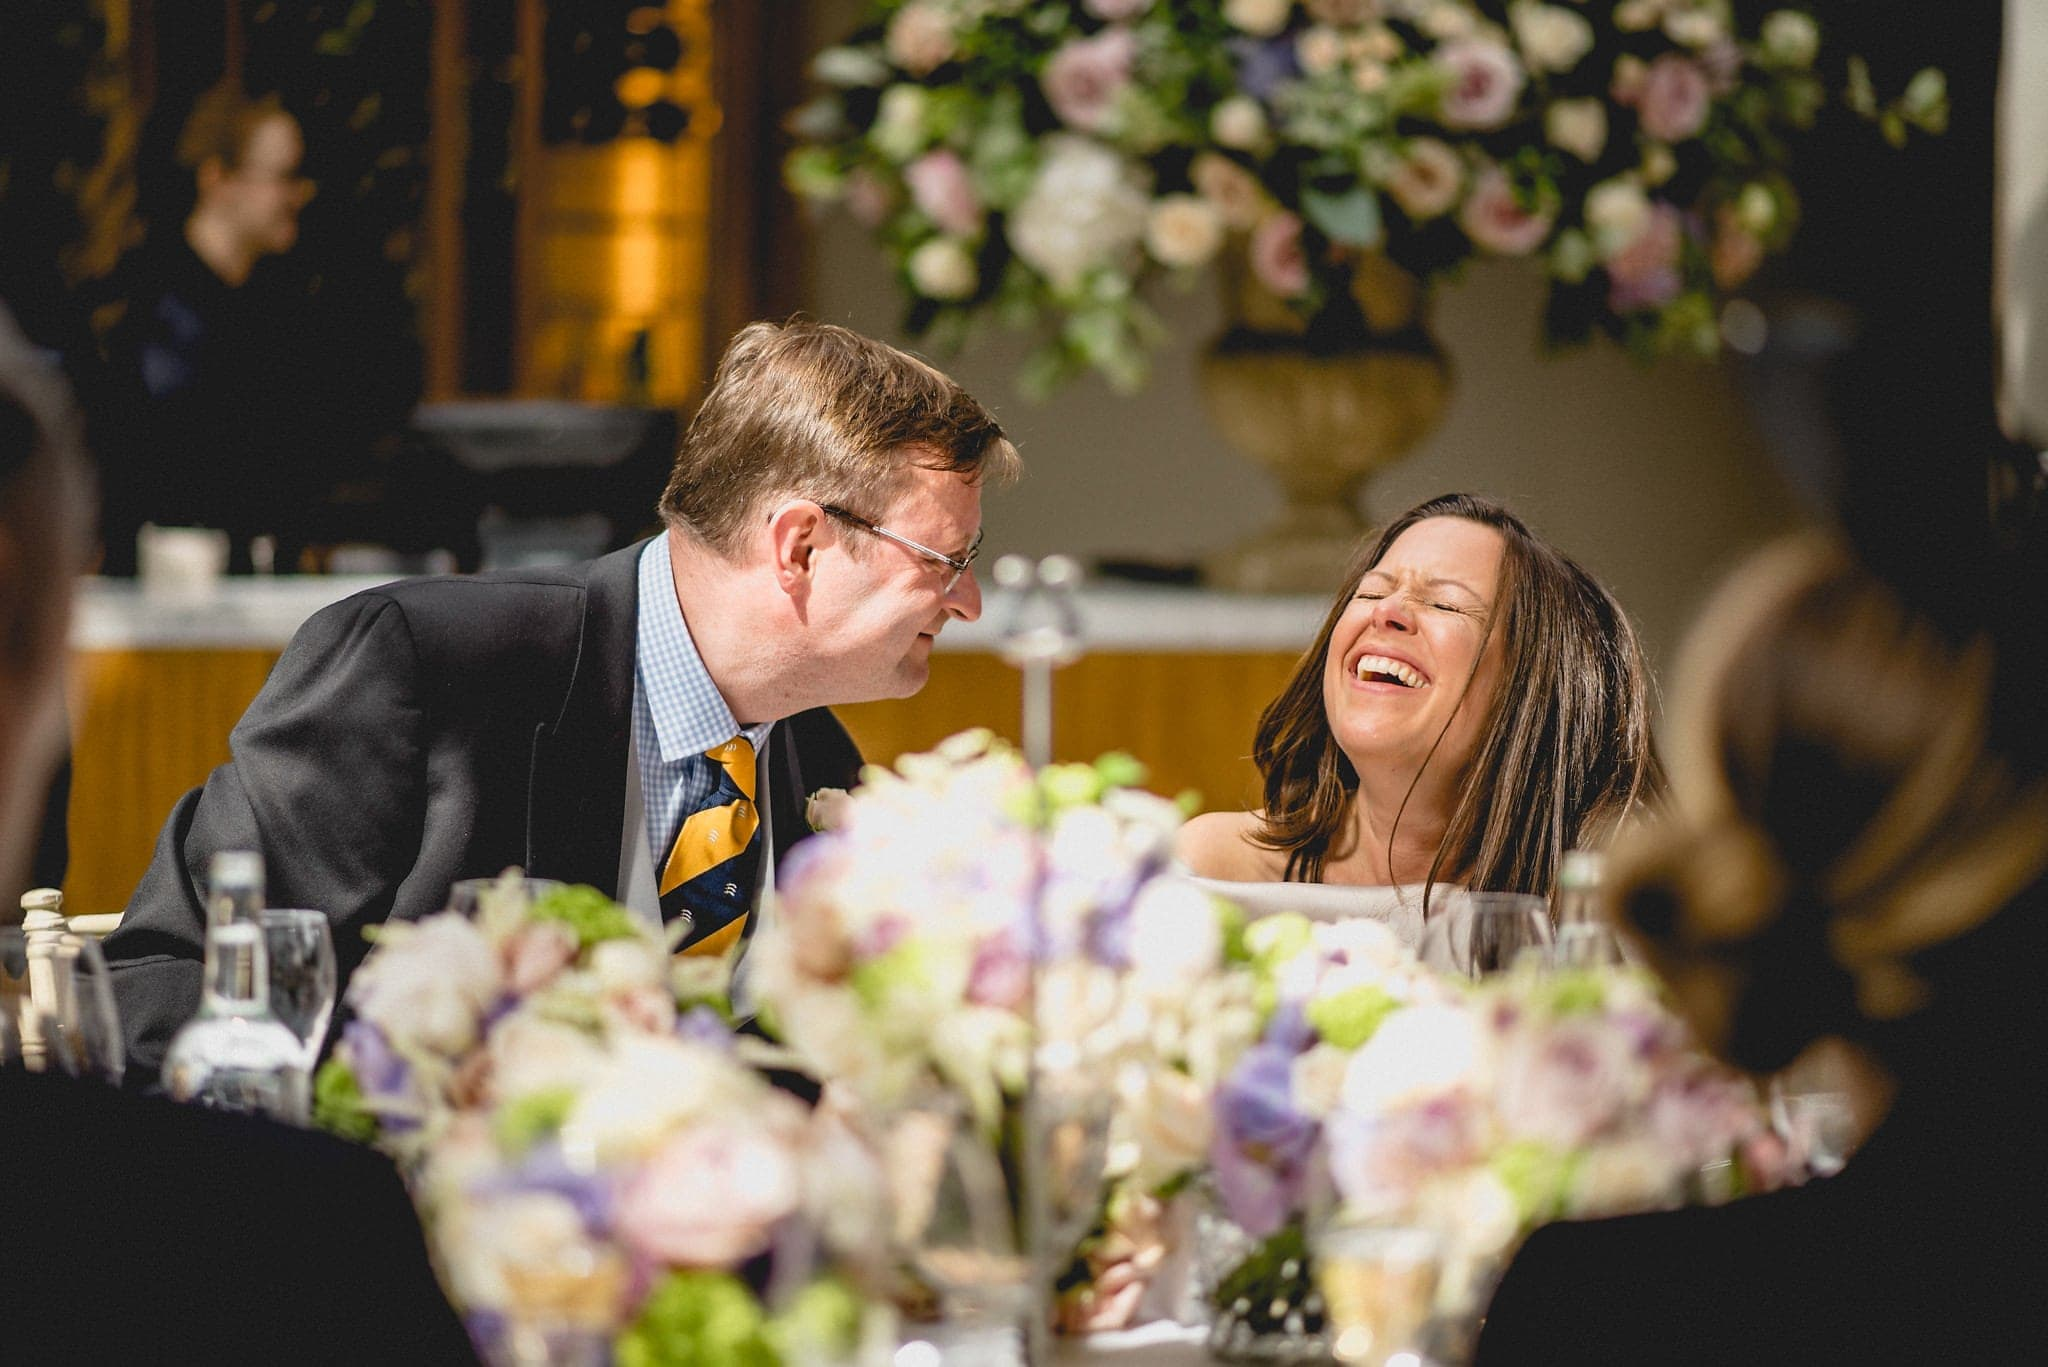 Groom makes bride laugh during speeches